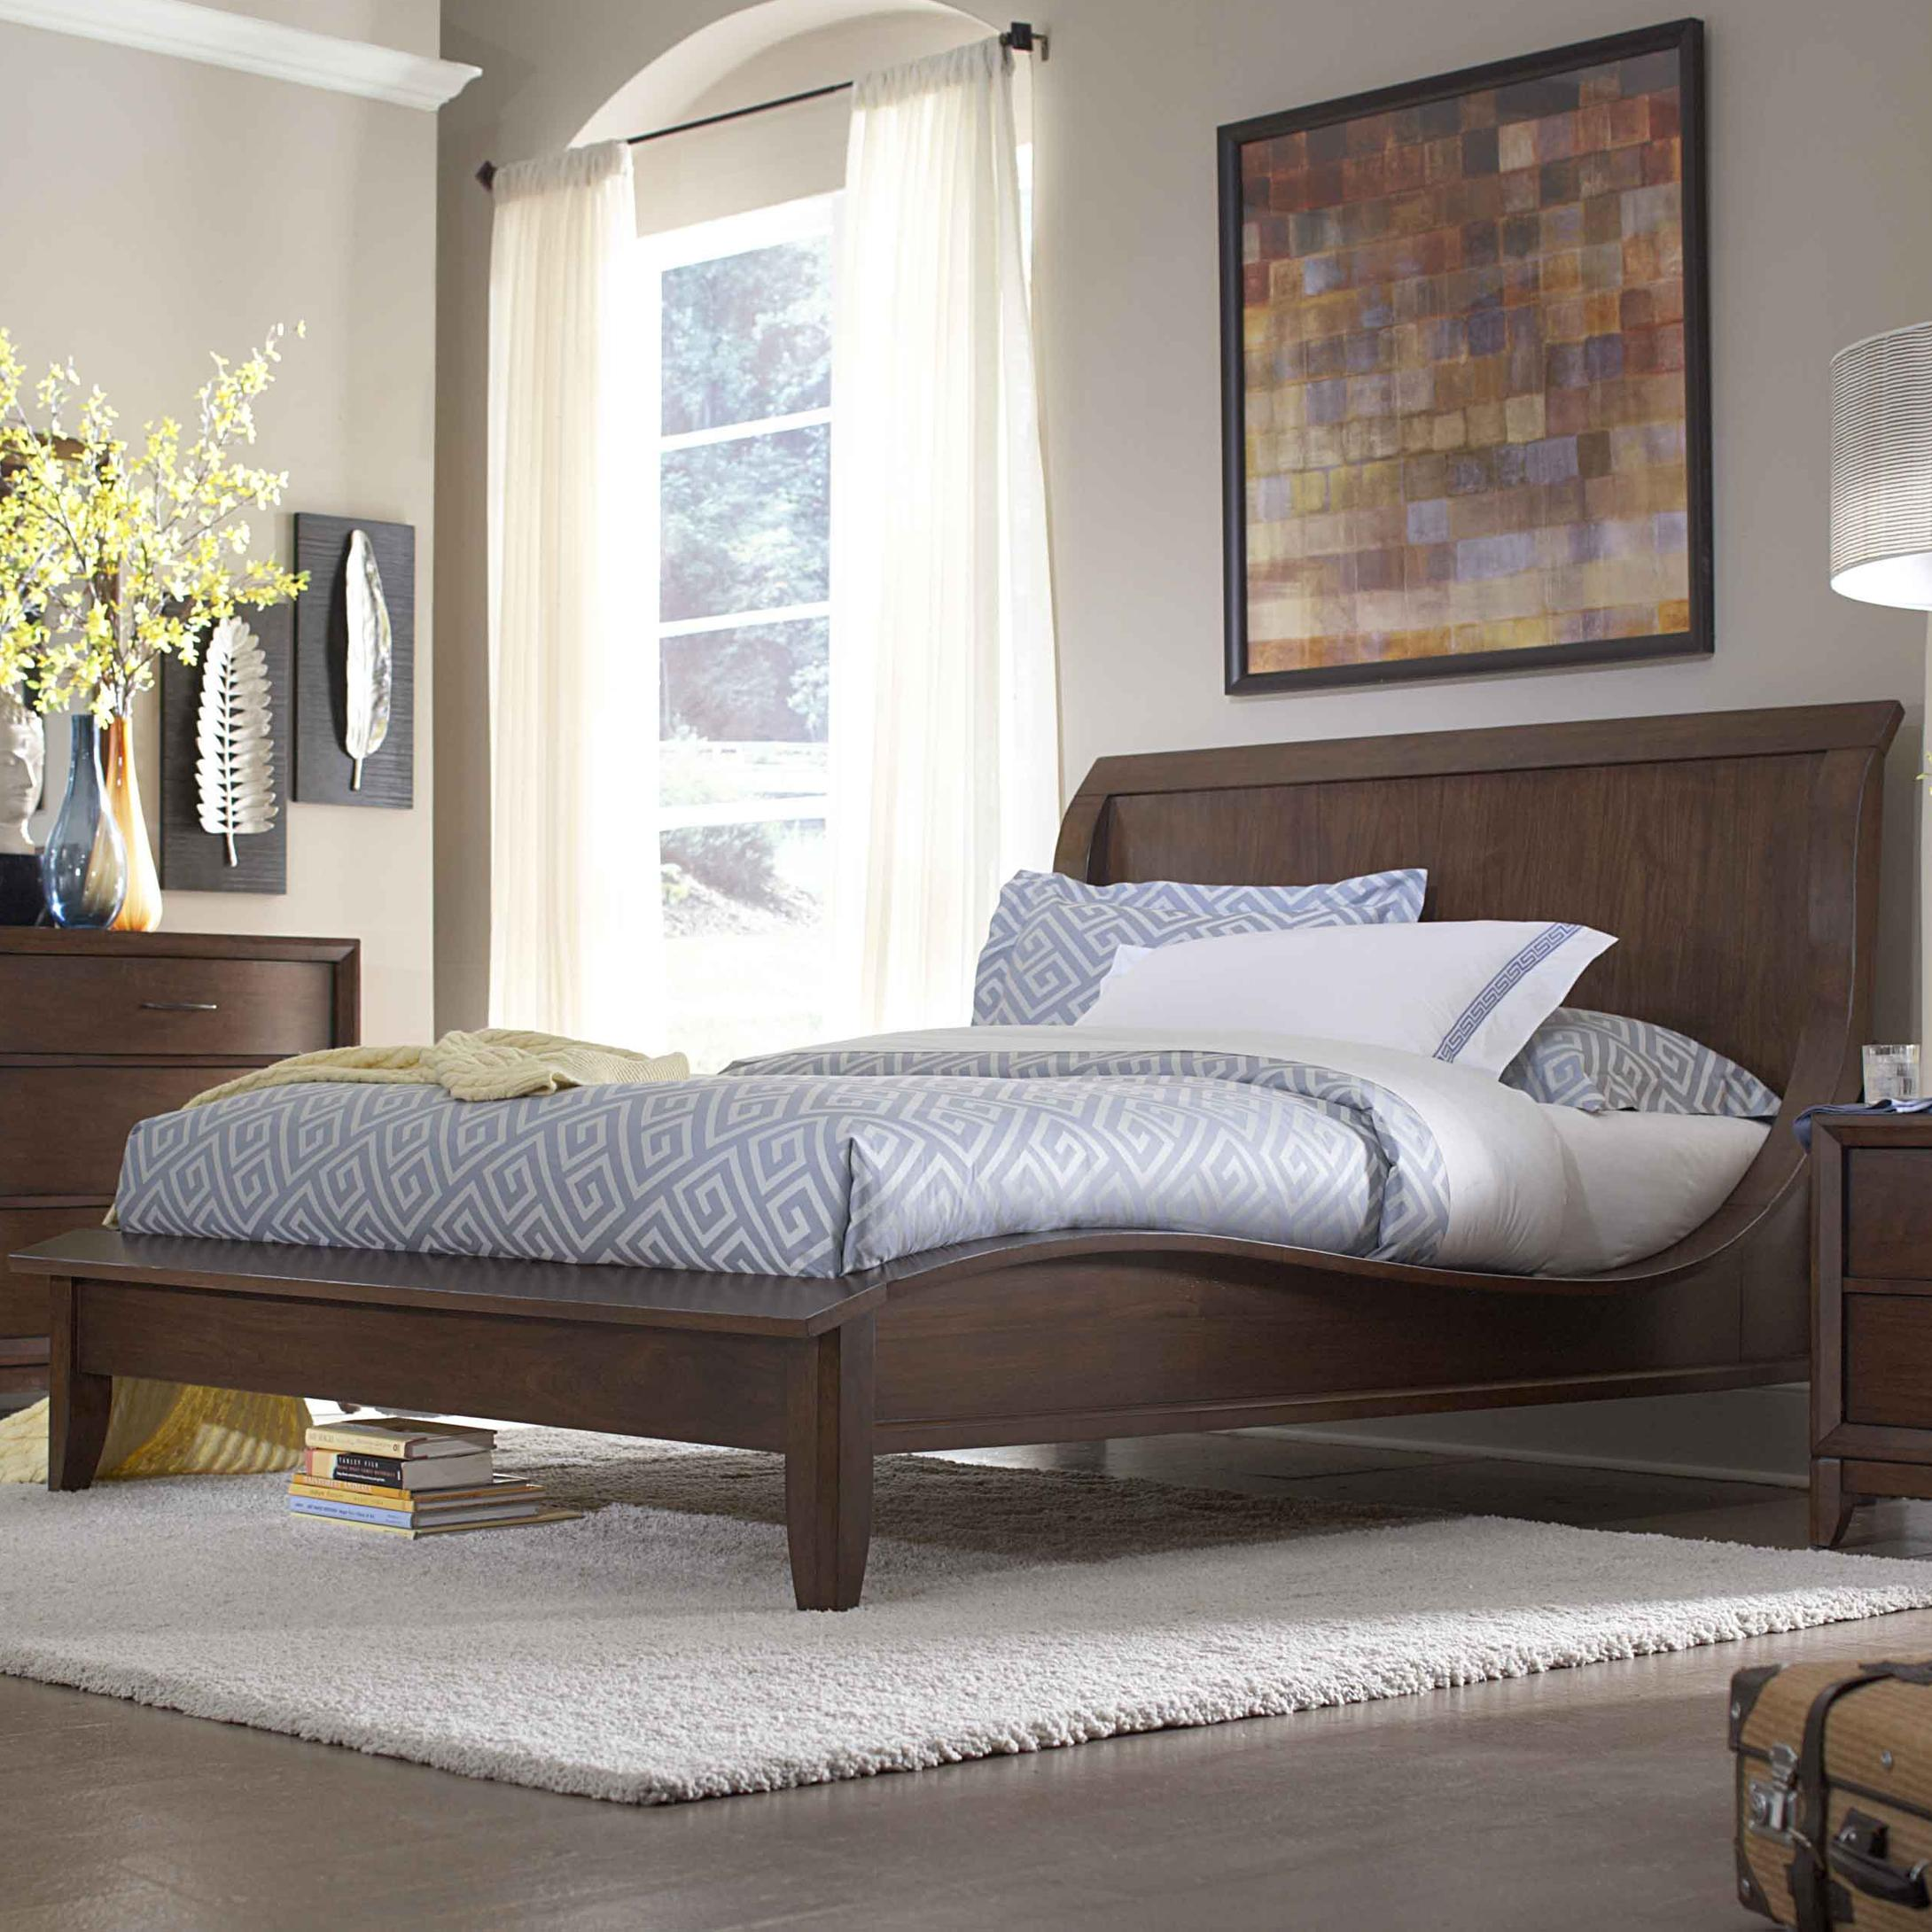 Homelegance 2135 Queen Bed - Item Number: 2135-1+2135-3